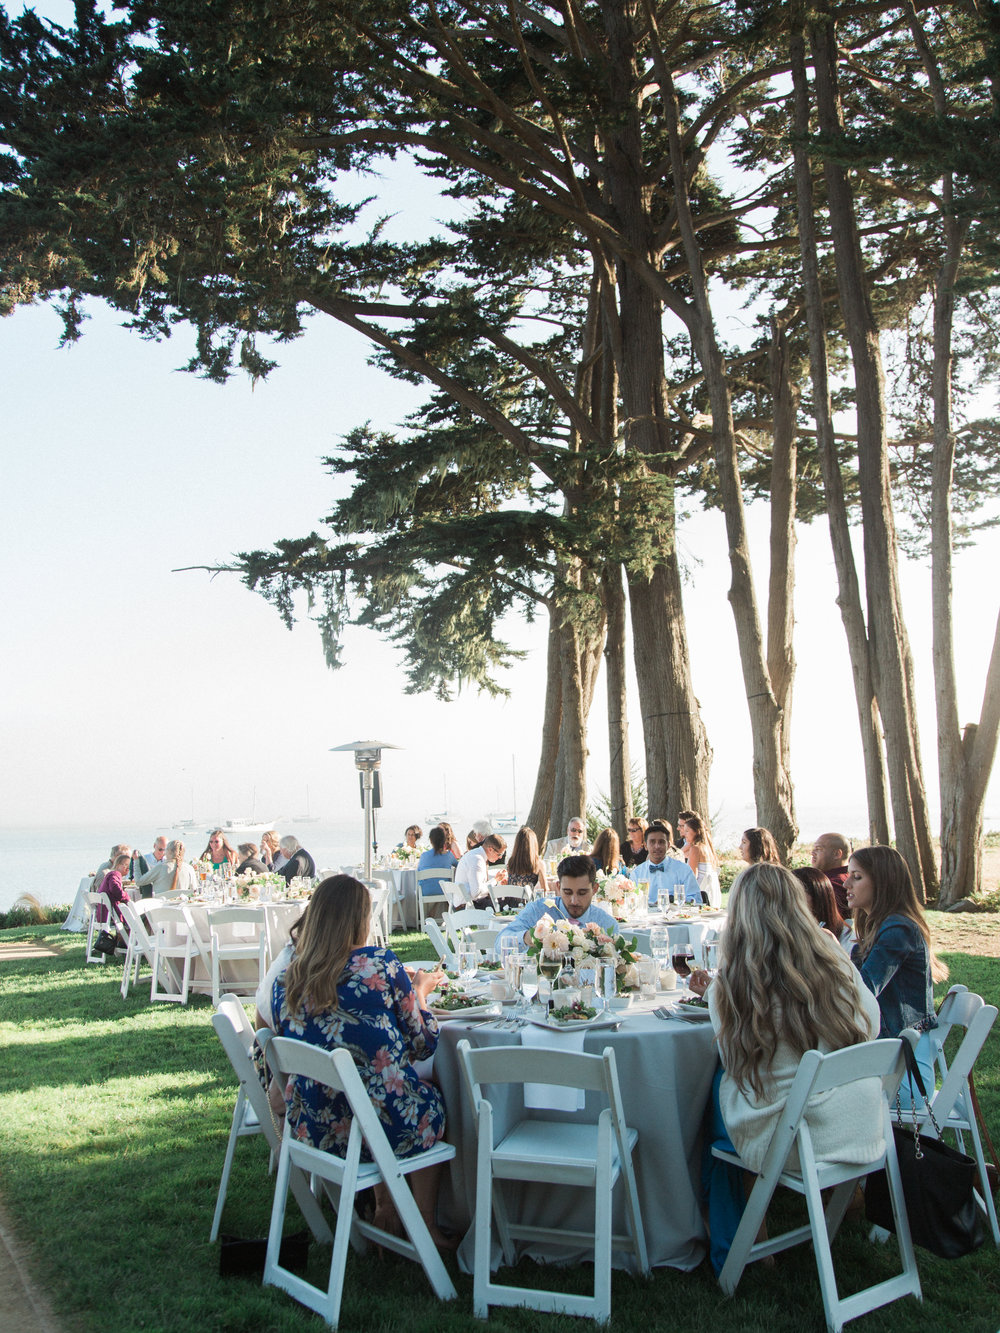 trynhphoto_socal_sf_halfmoon_bay_wedding_photographer_JA-466.jpg